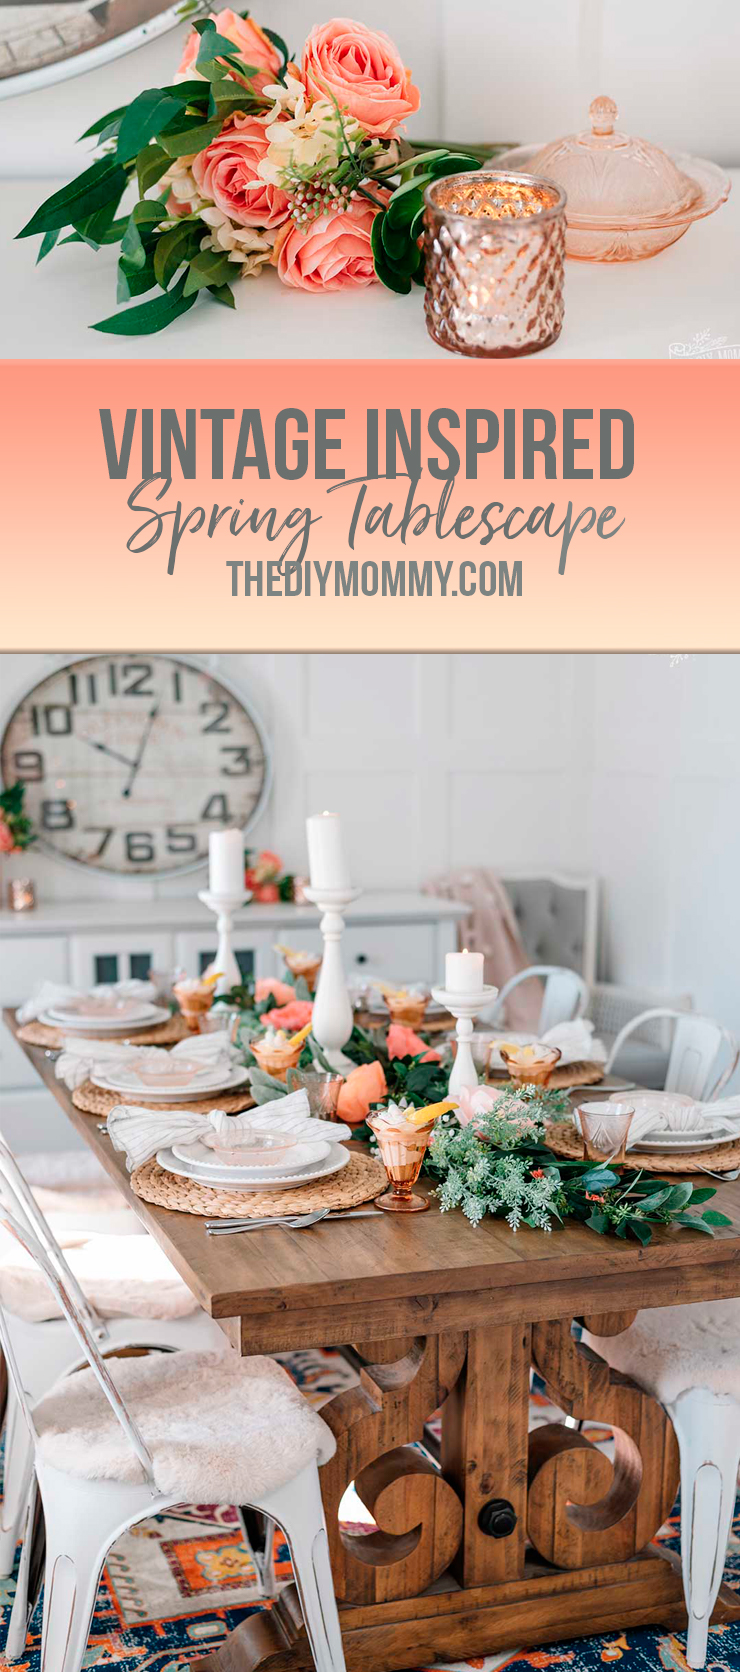 Come see my spring tablescape in warm pinks, yellows, and vintage-inspired accents. Get some ideas on how to decorate your own table for Easter or Spring!